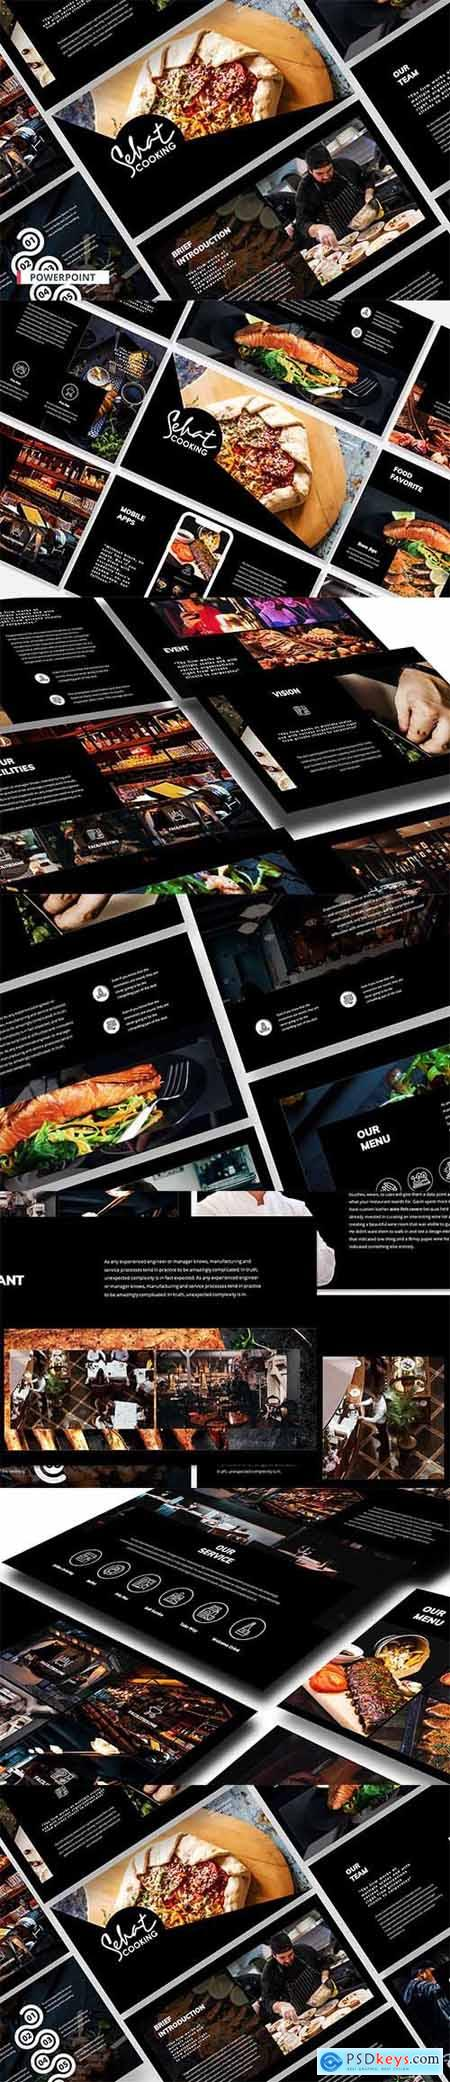 Restaurant Pitch - Powerpoint, Keynote and Google Slides Template